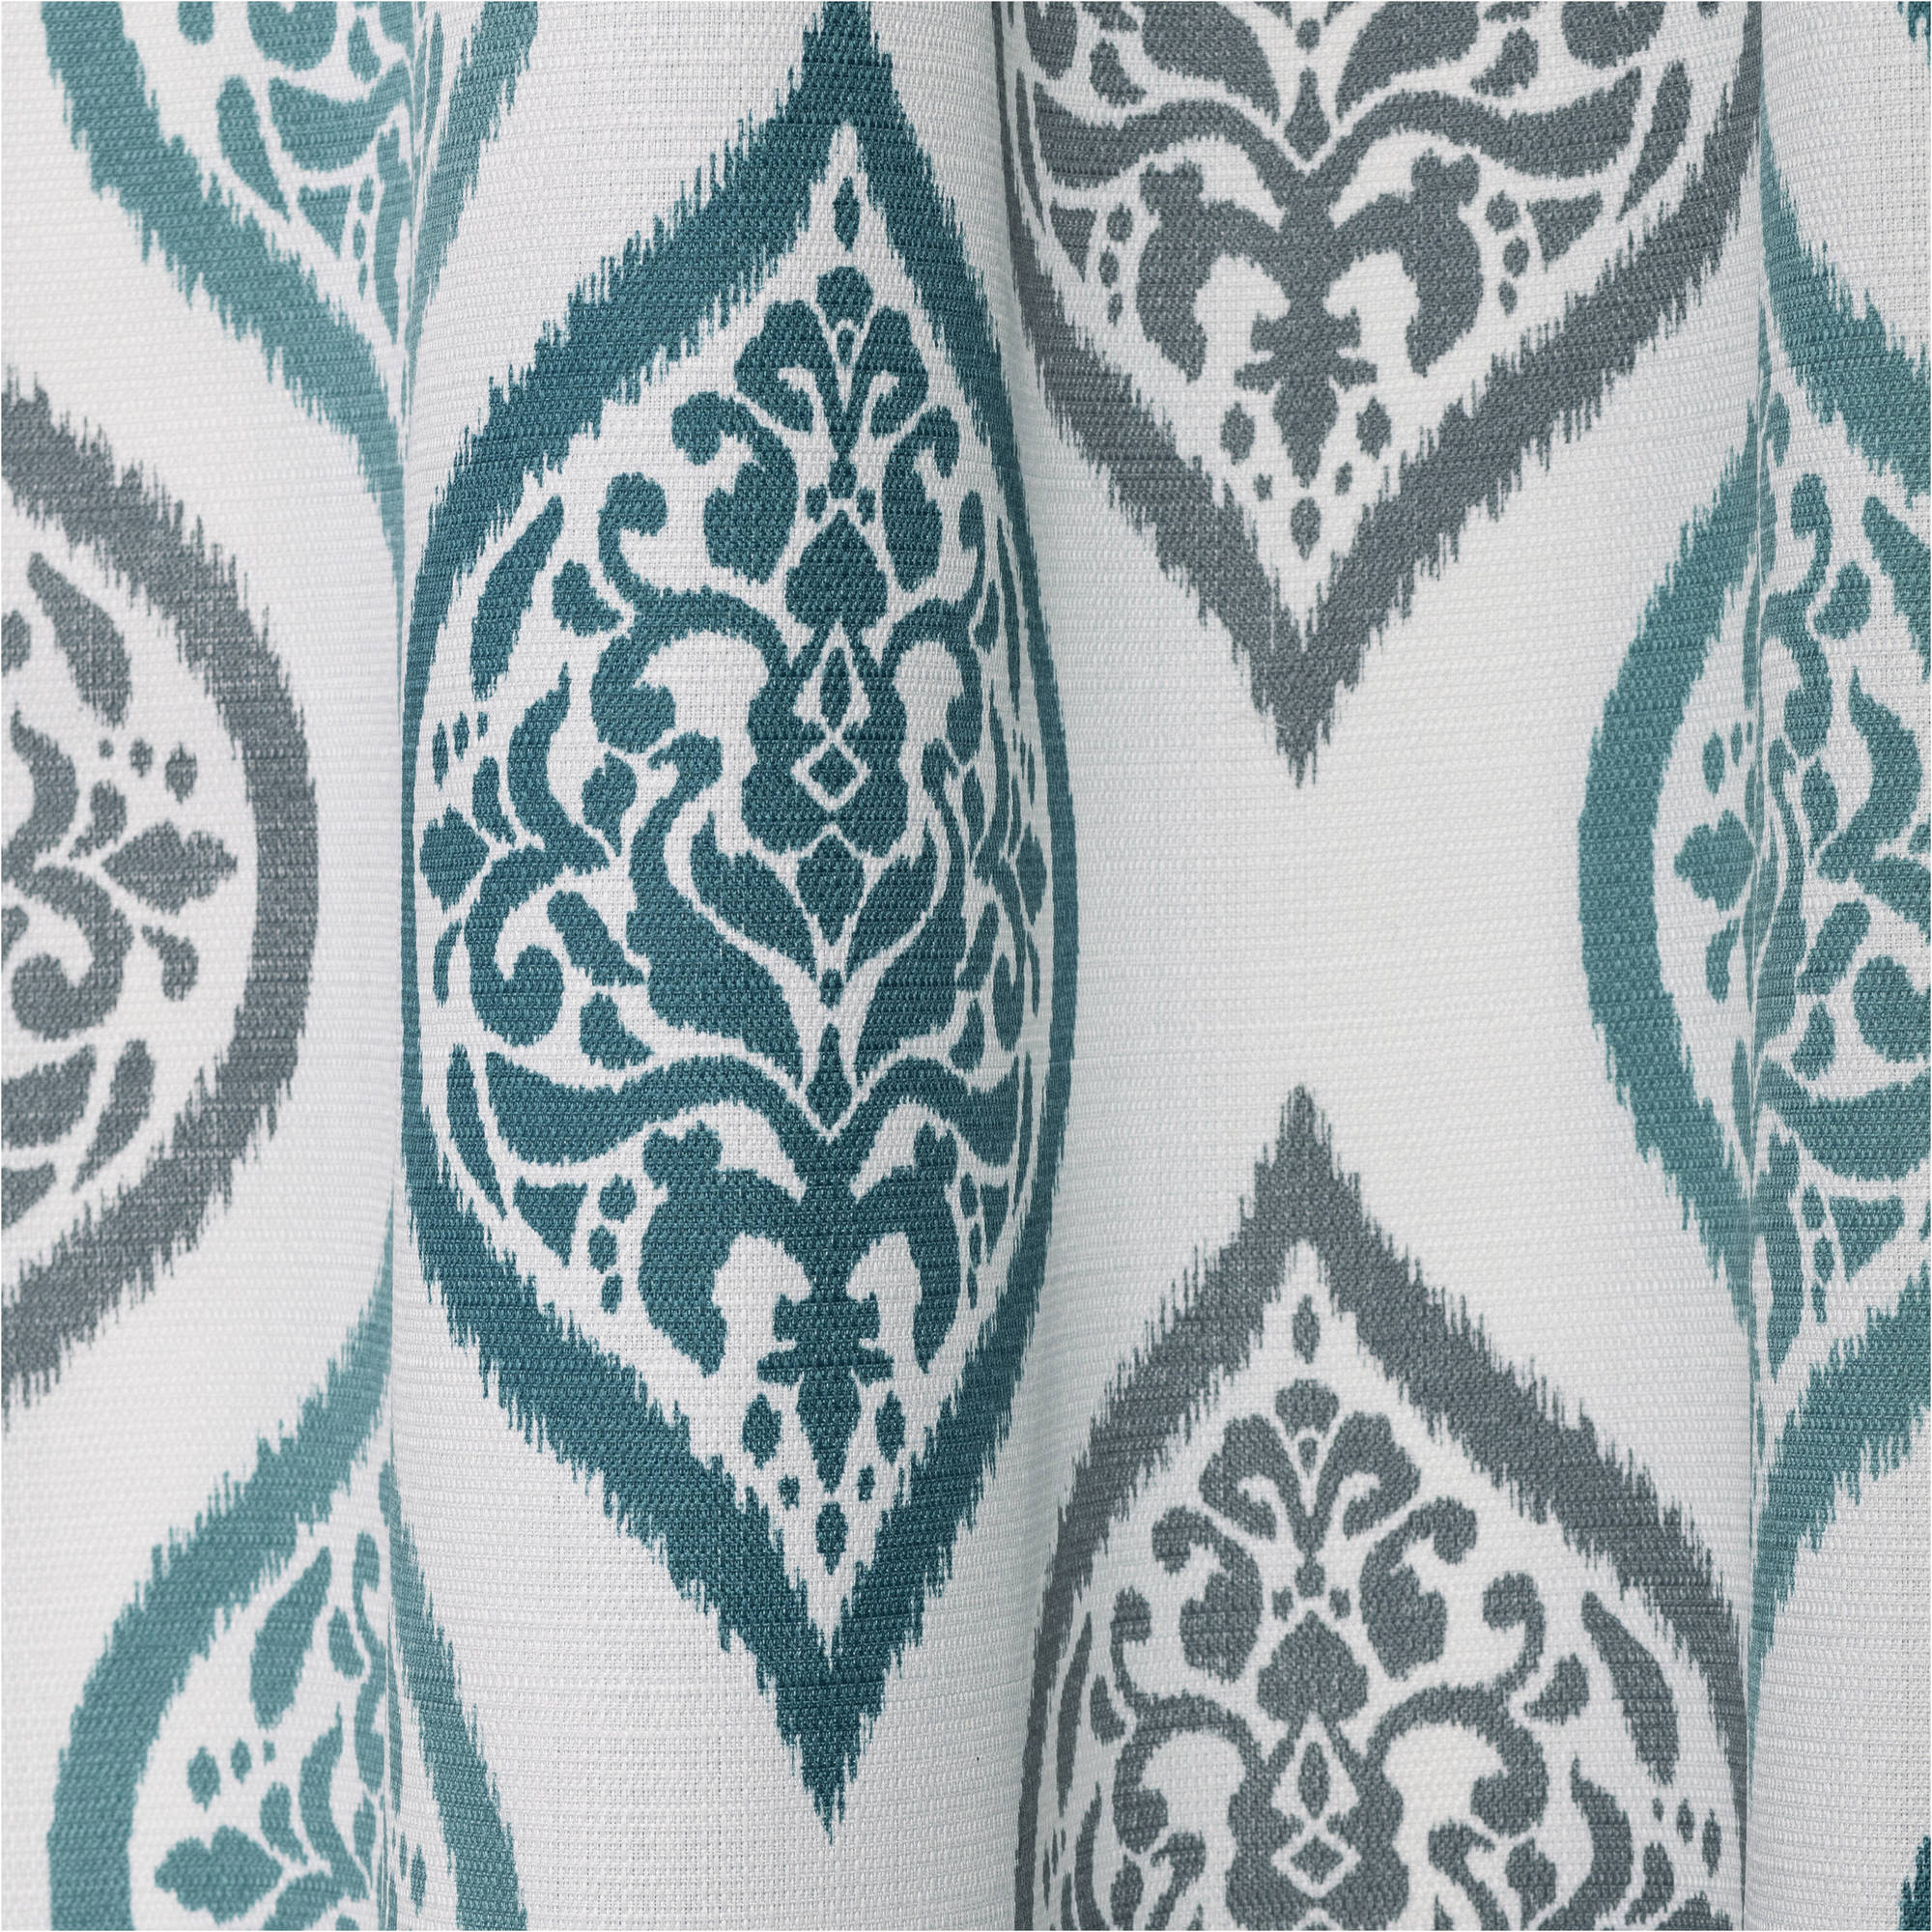 Teal and grey curtain panels - Teal And Grey Curtain Panels 11